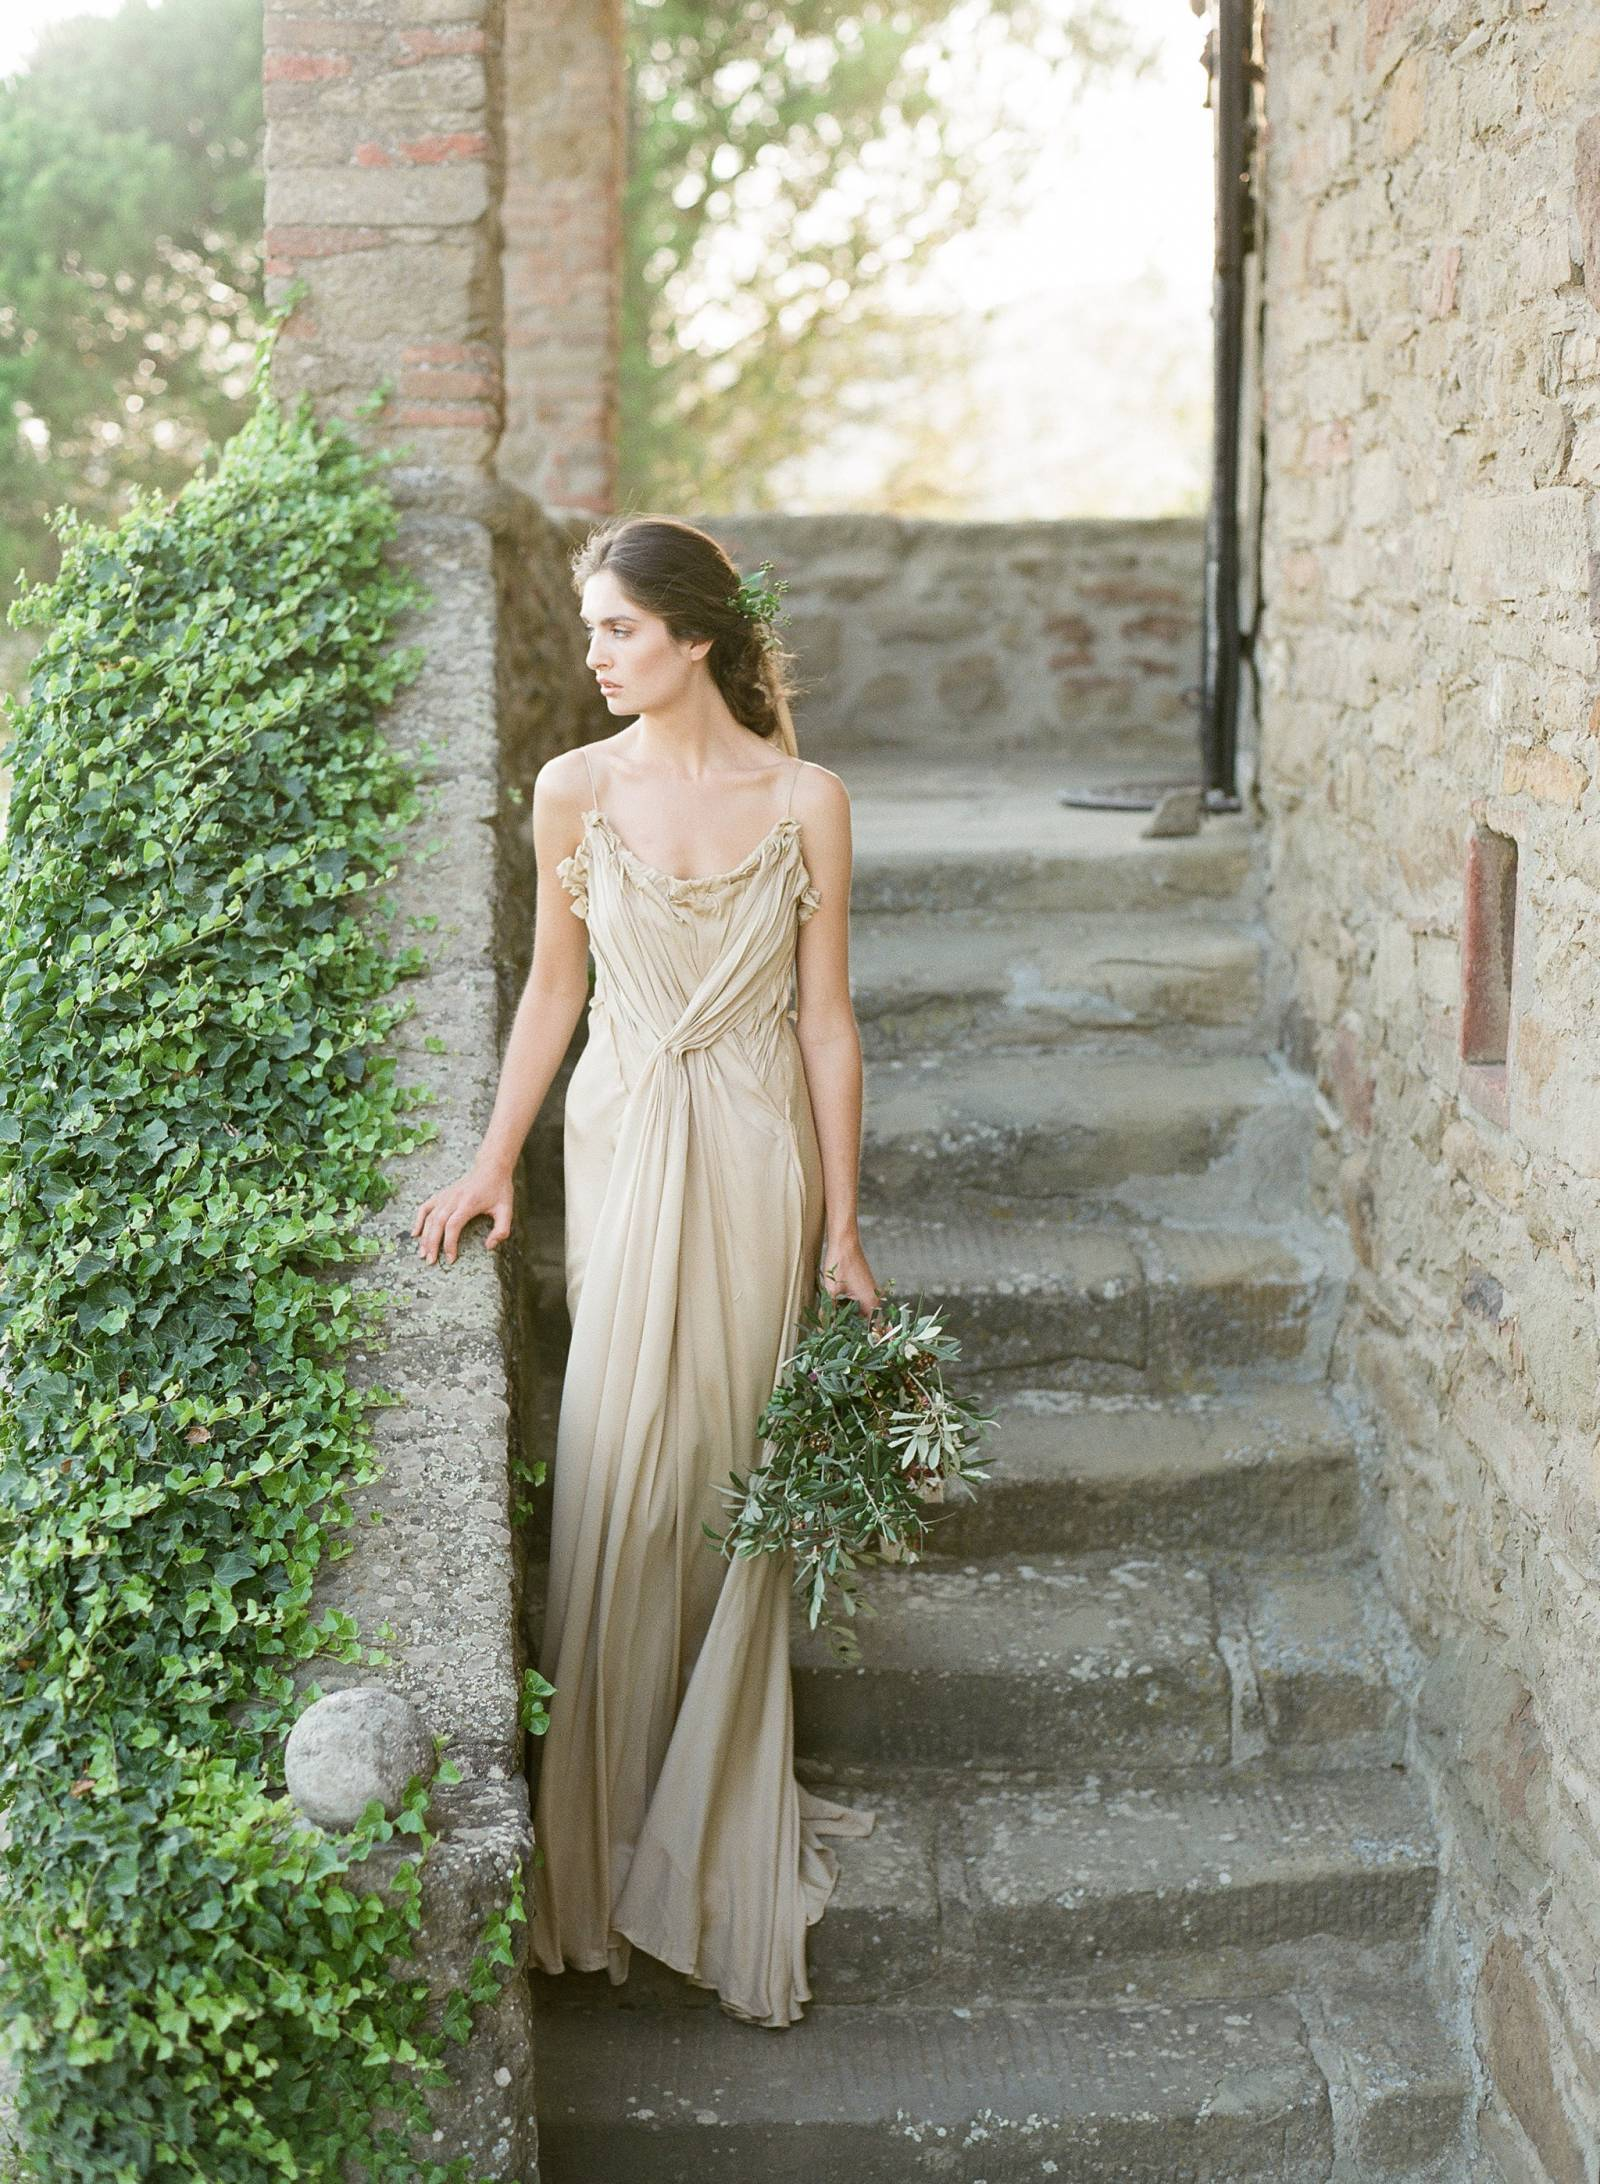 Best Of 2019 21 Of Our Favourite Bridal Gowns Year End Favourite